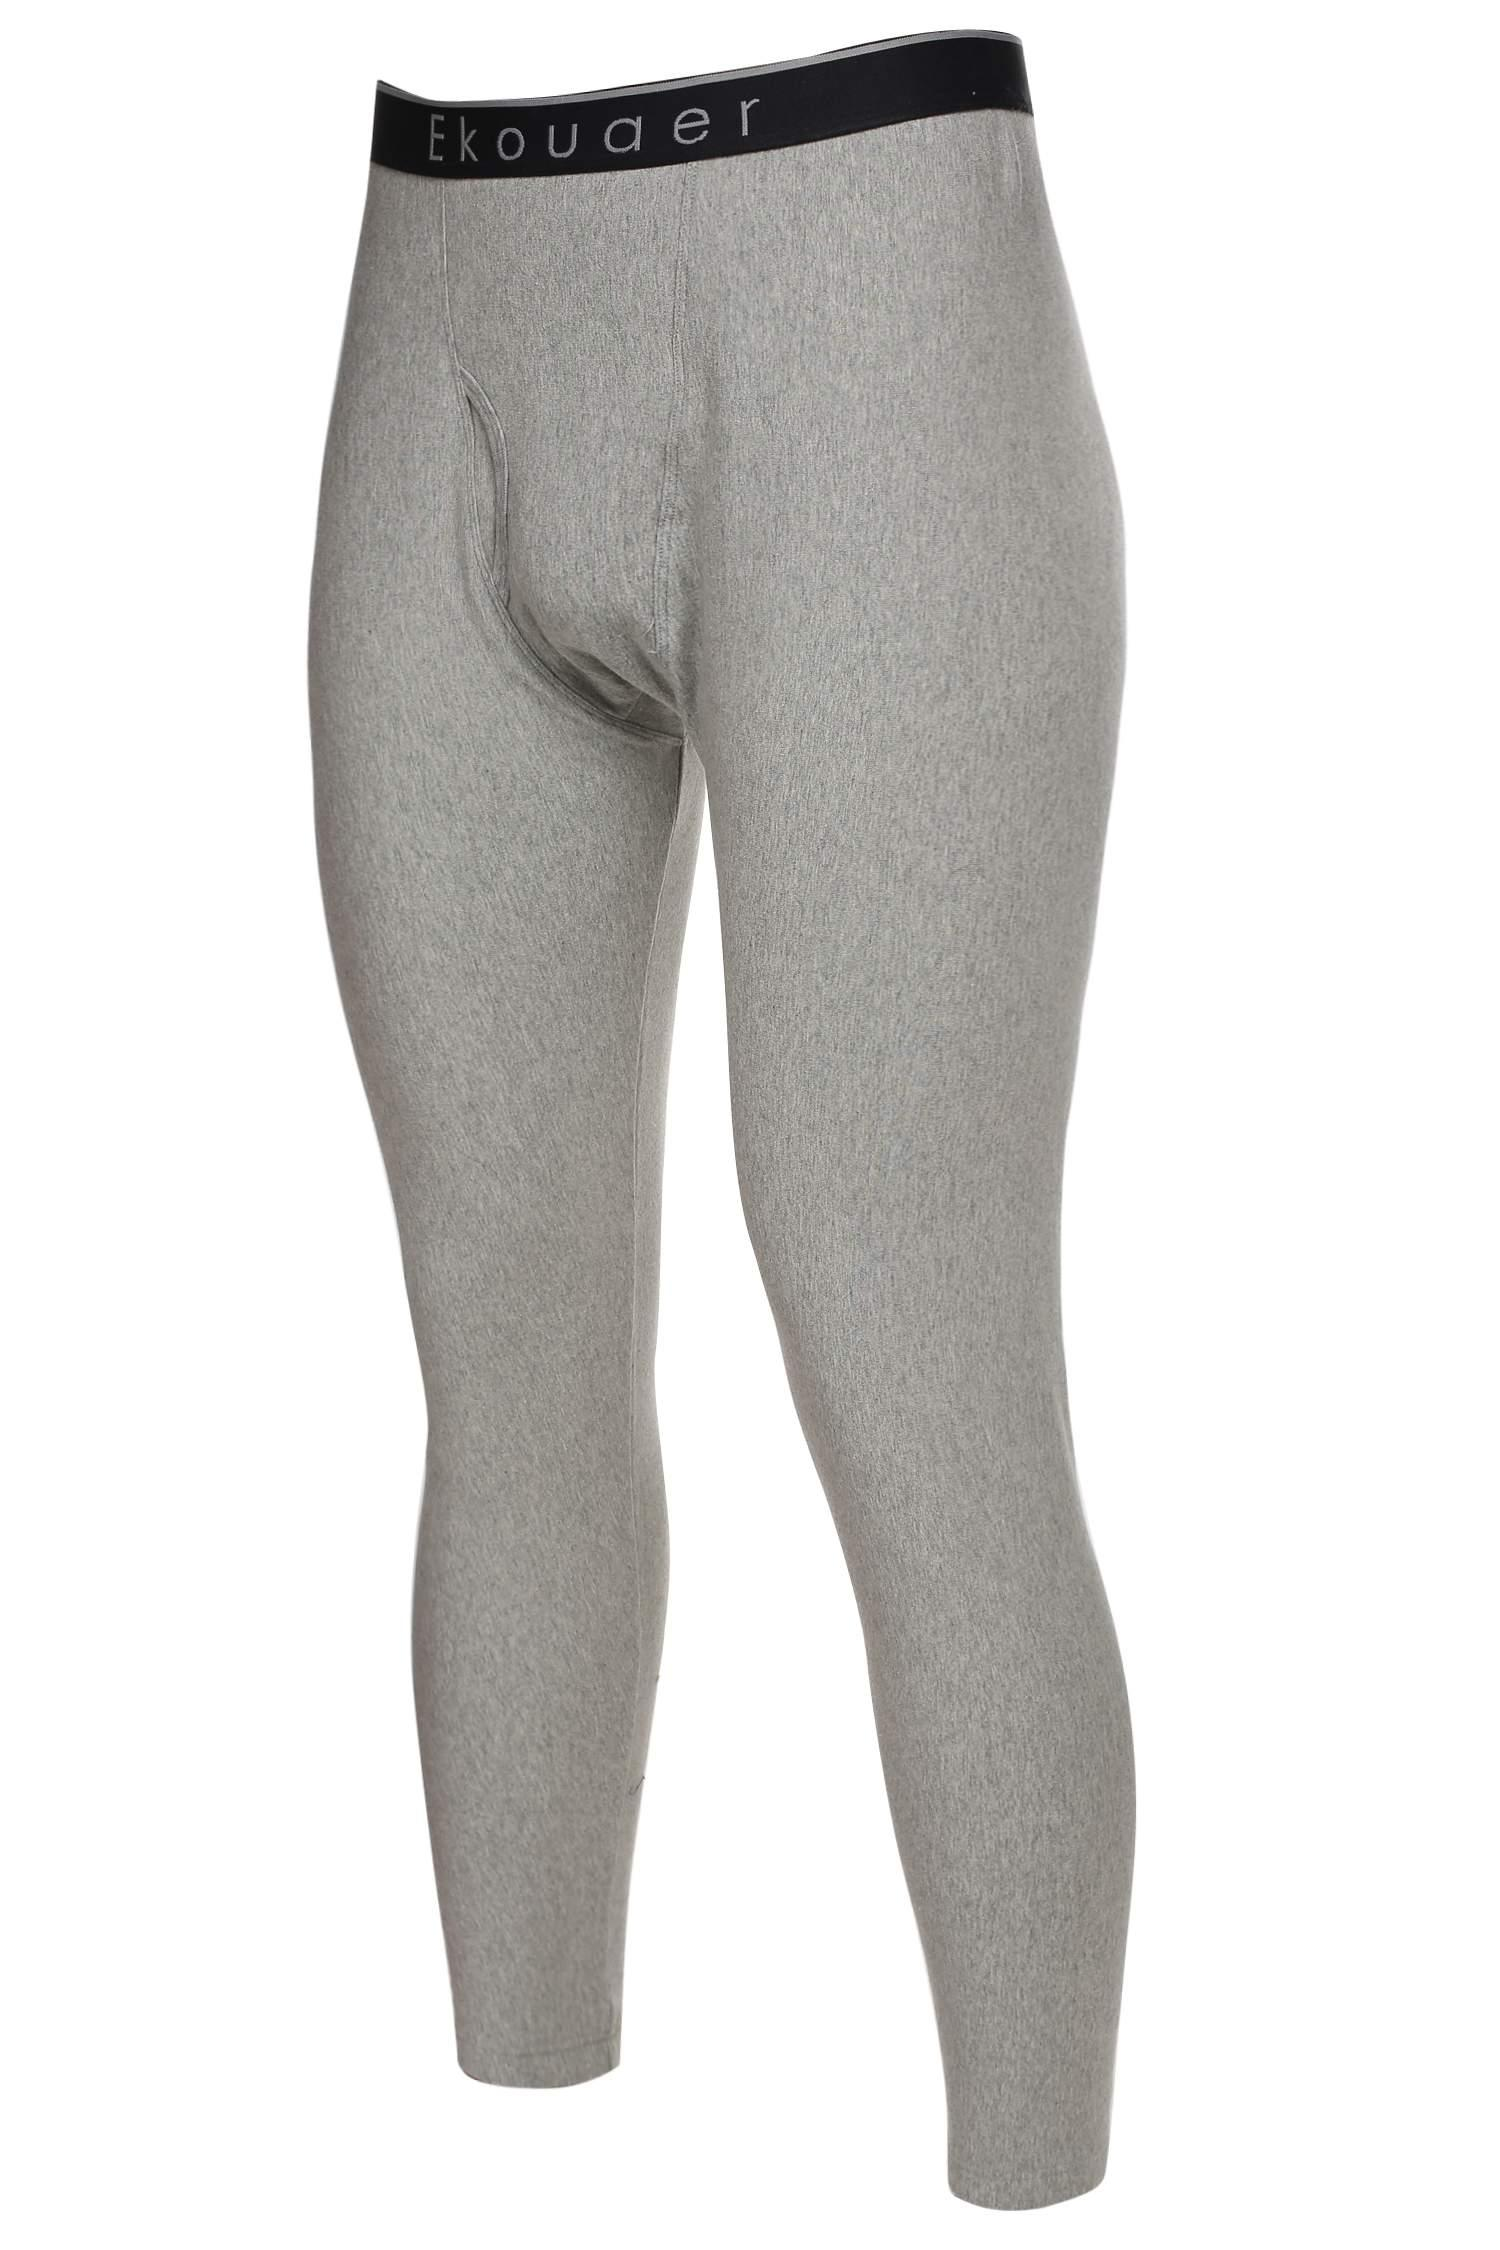 Mens Warm Thermal Underwear Pants Bottoms Mid-Weight by